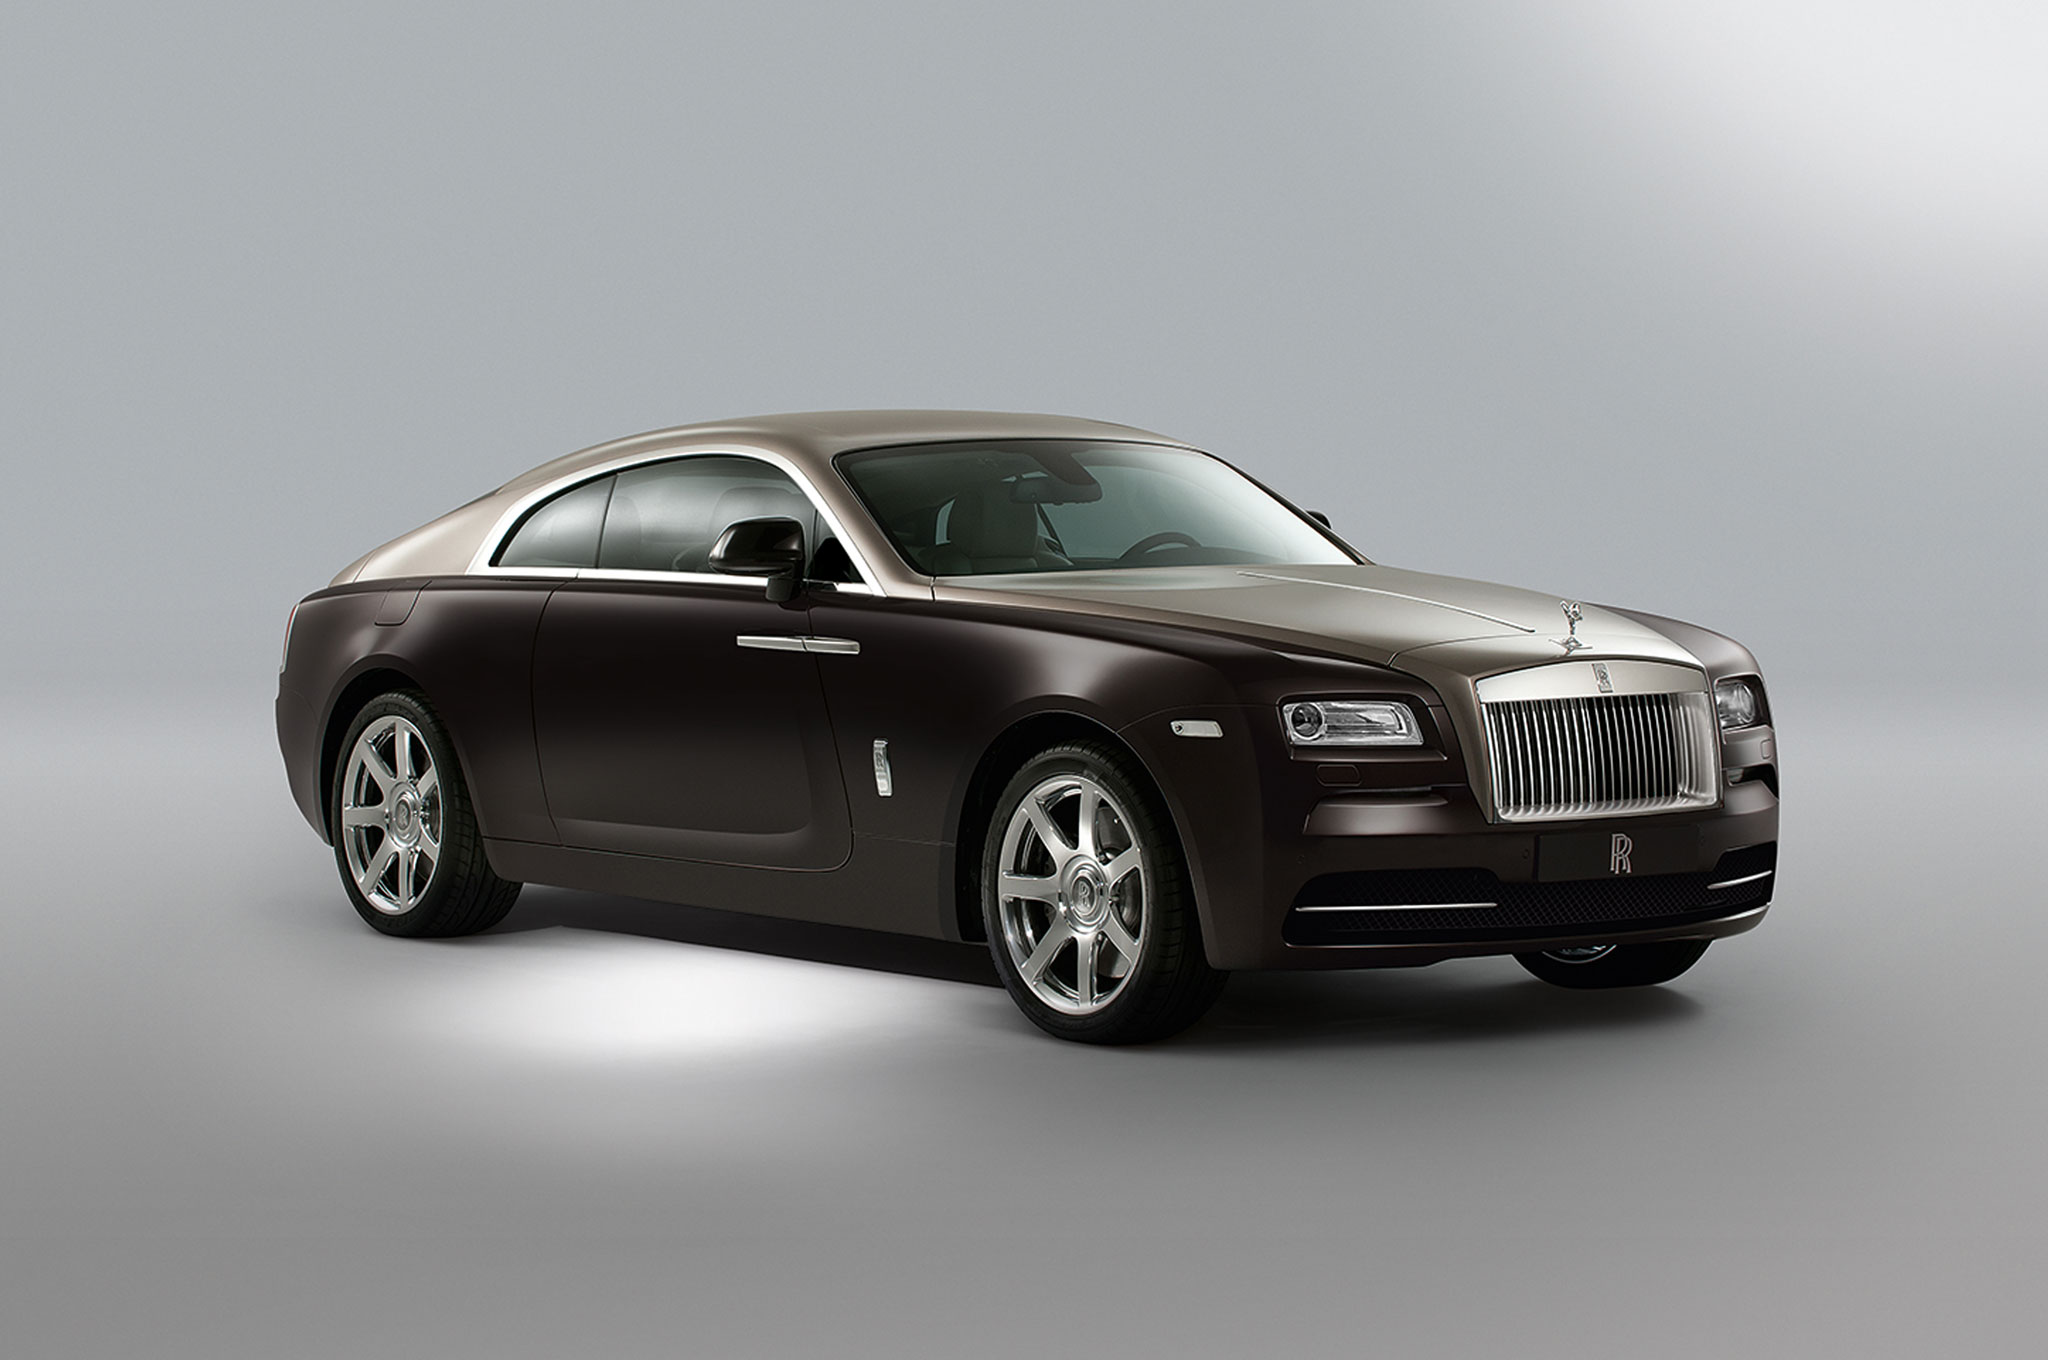 2014 Rolls Royce Wraith Front Right View